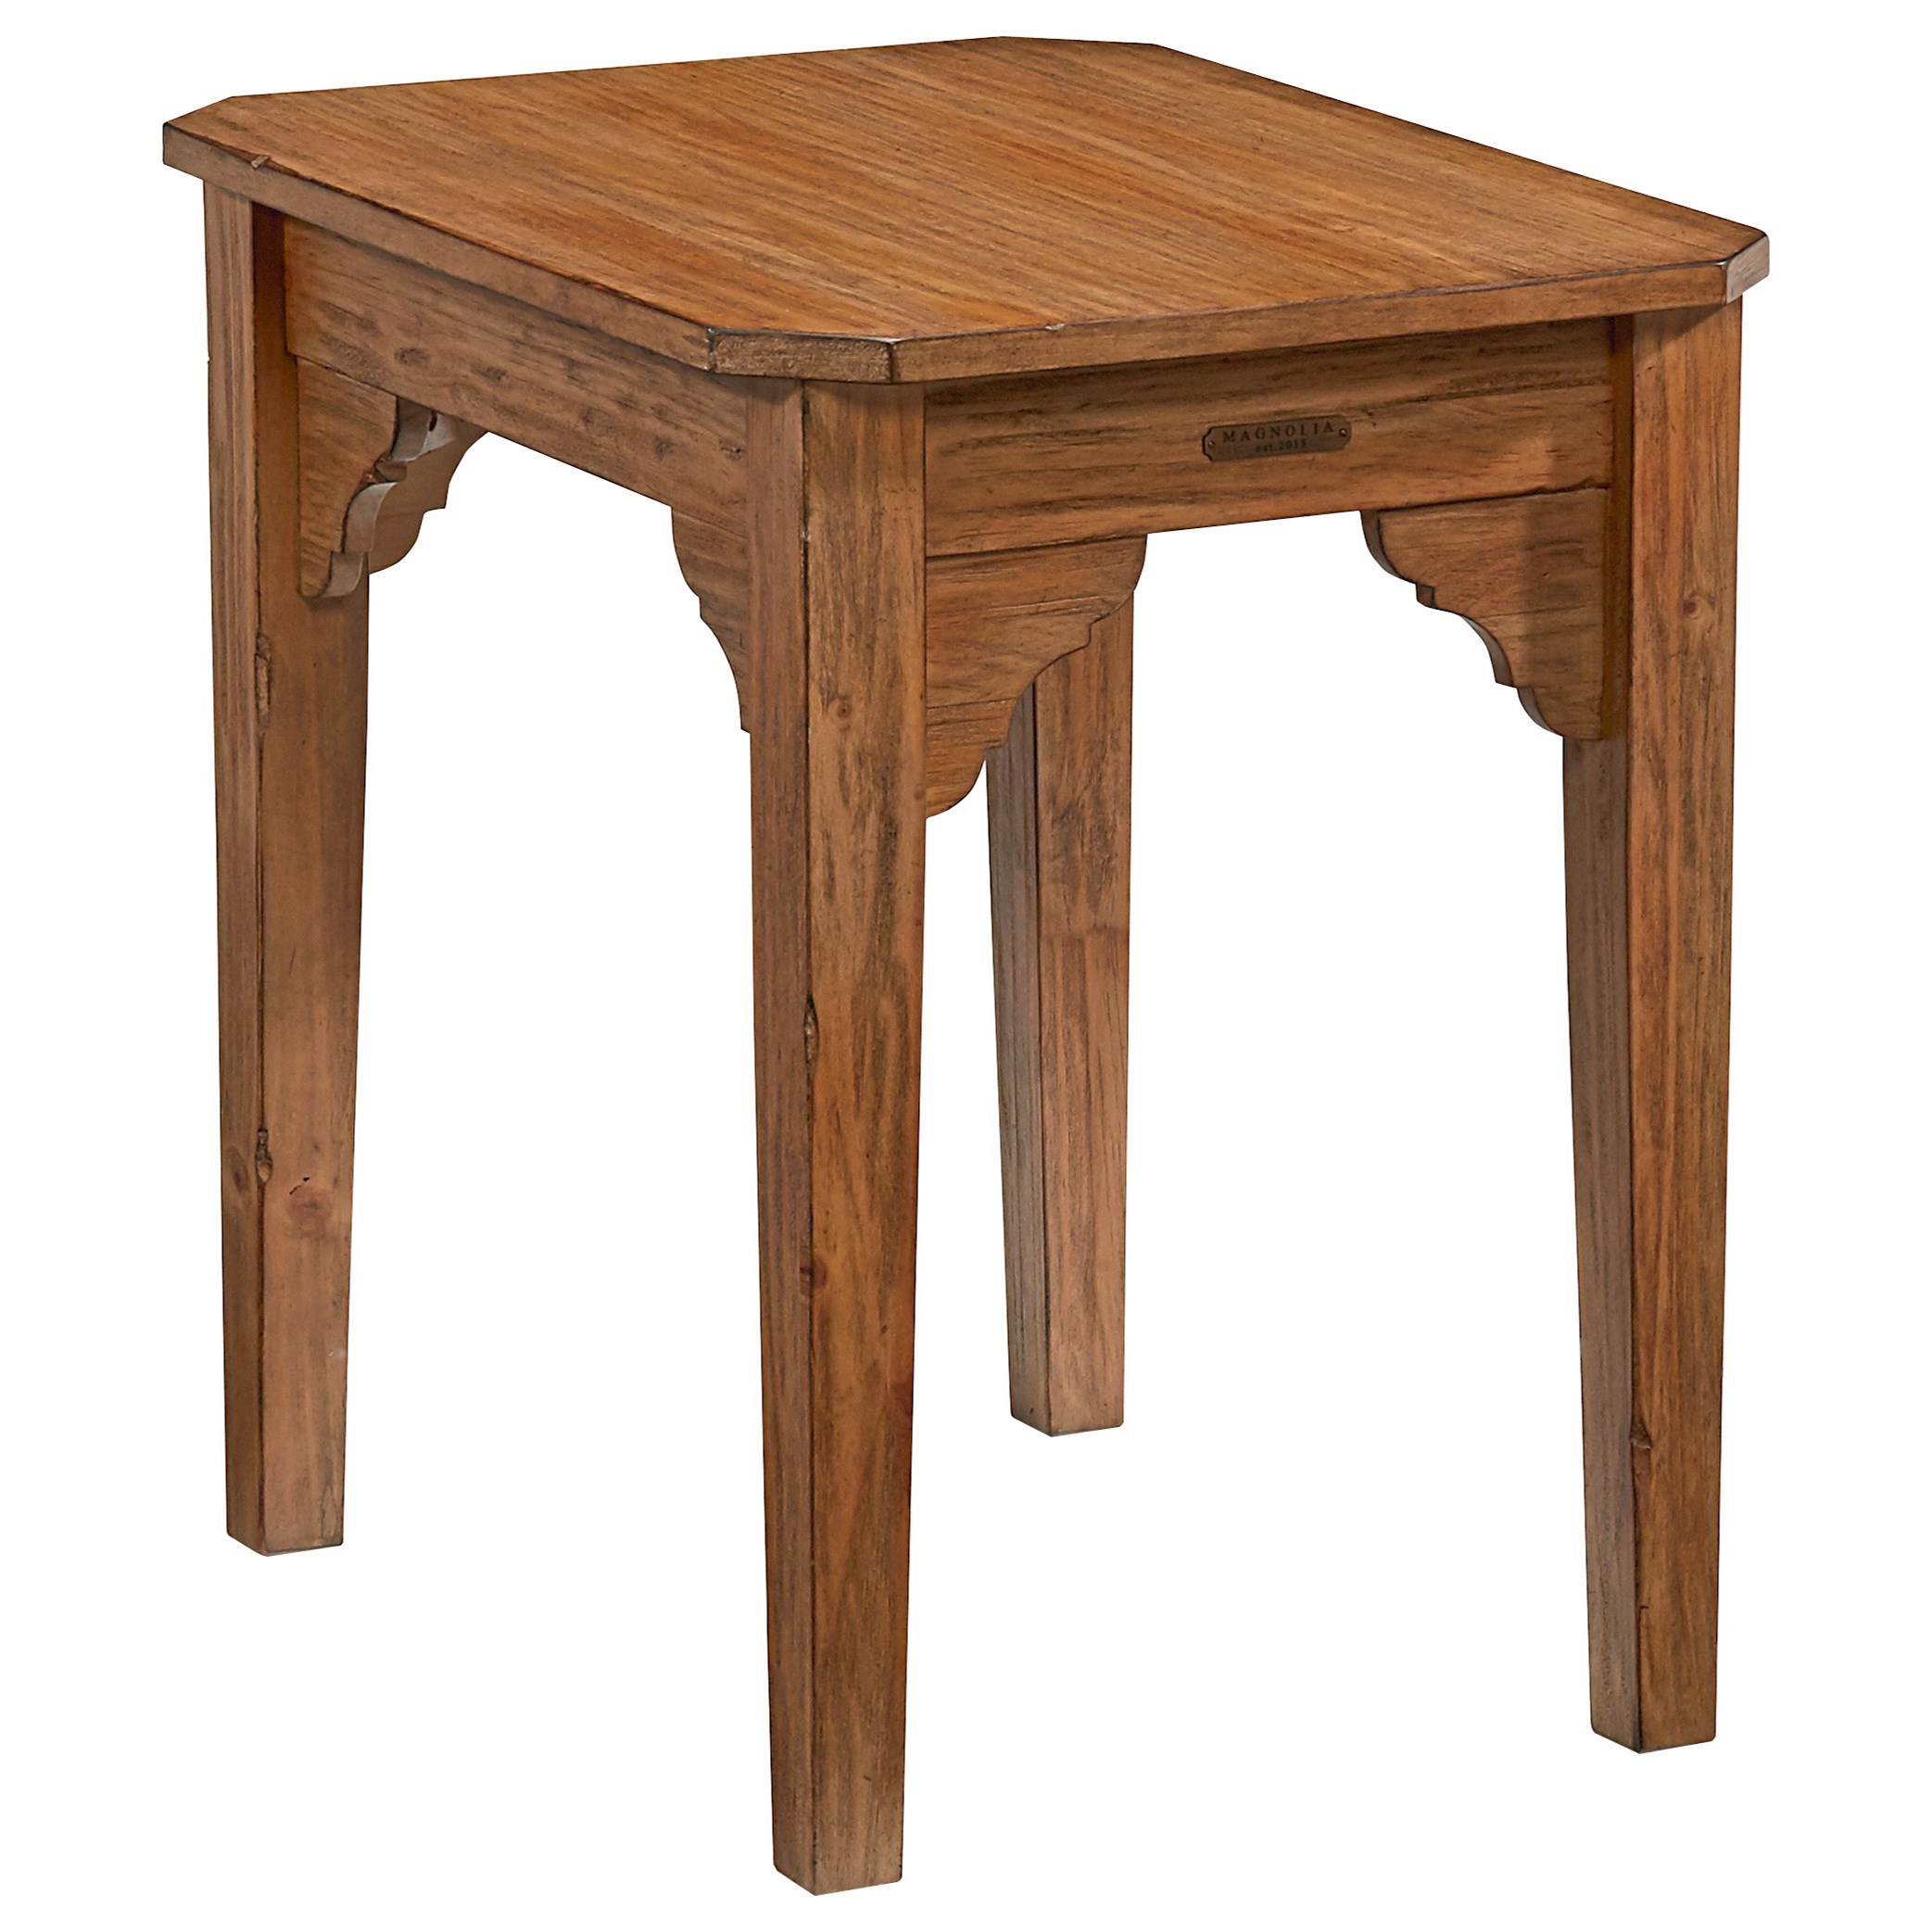 Joanna Gaines Farmhouse Bar Stools Magnolia Home By Joanna Gaines Farmhouse End Table With